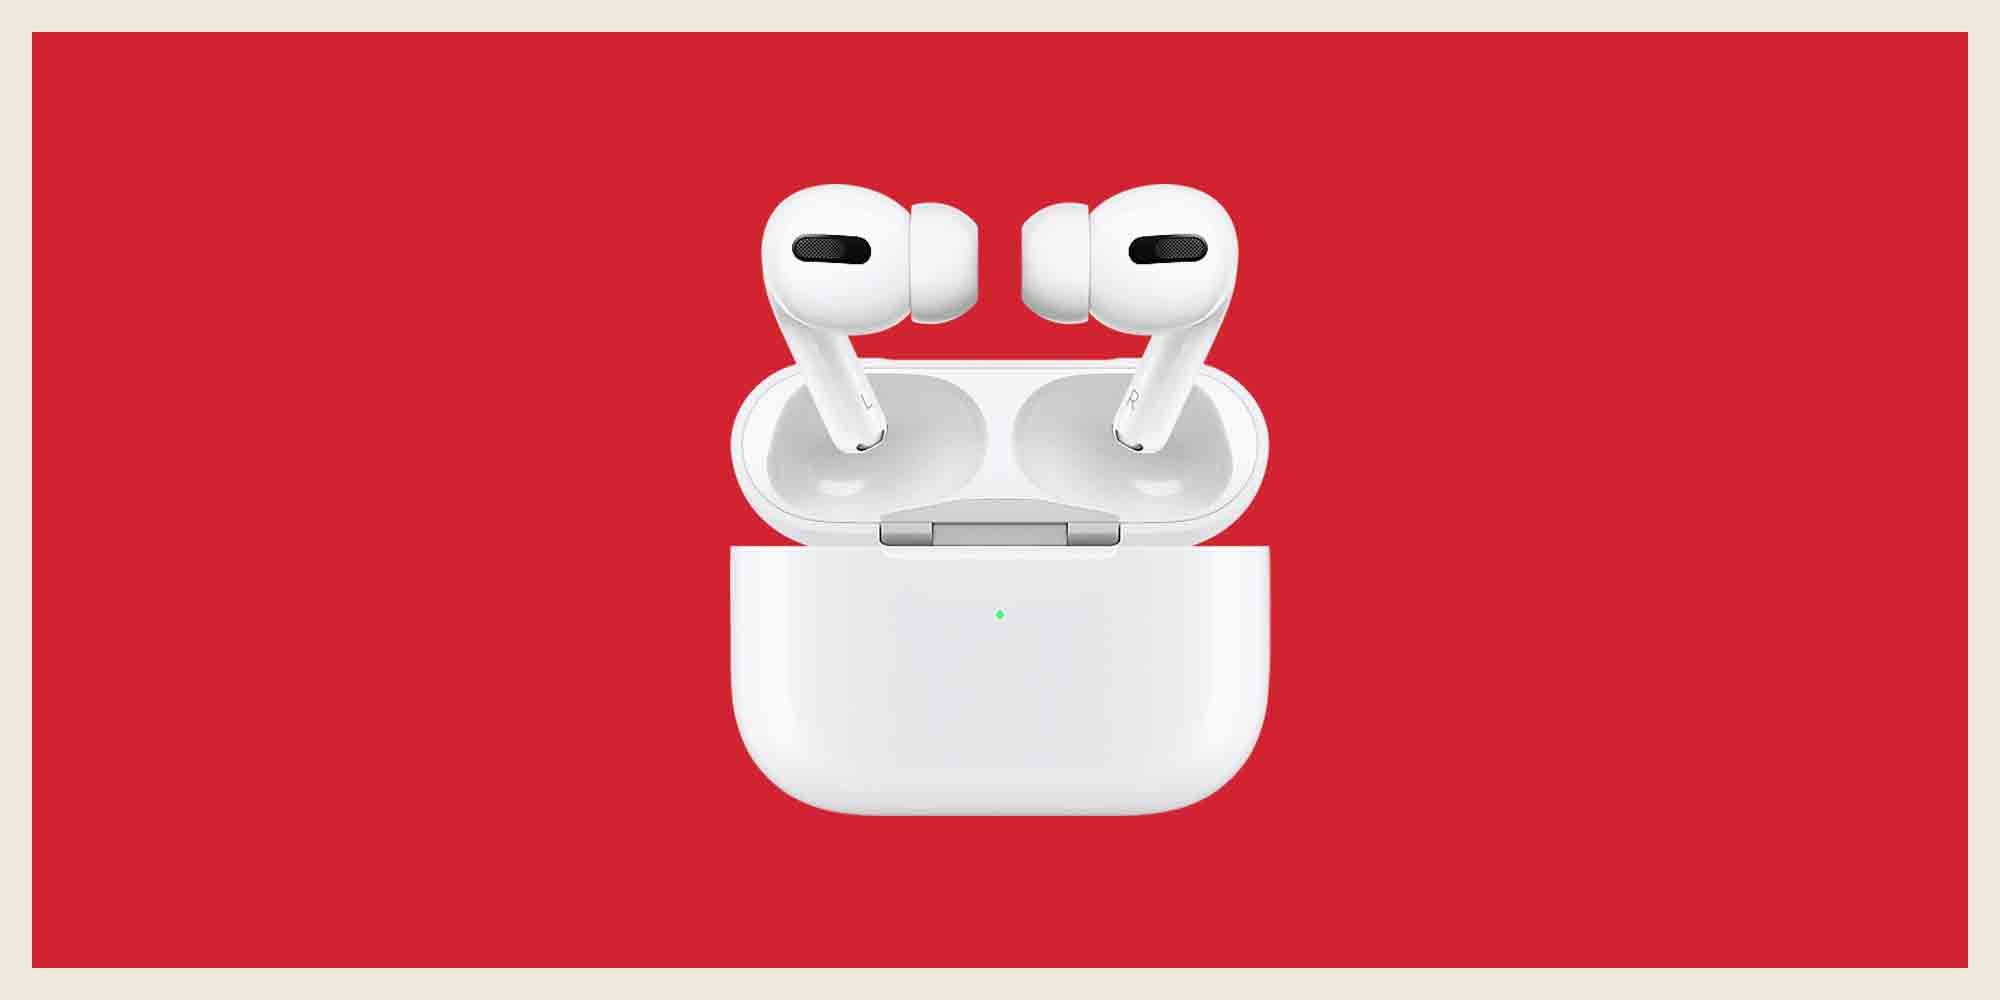 Apple's New AirPods Pro Are Already on Sale at Amazon